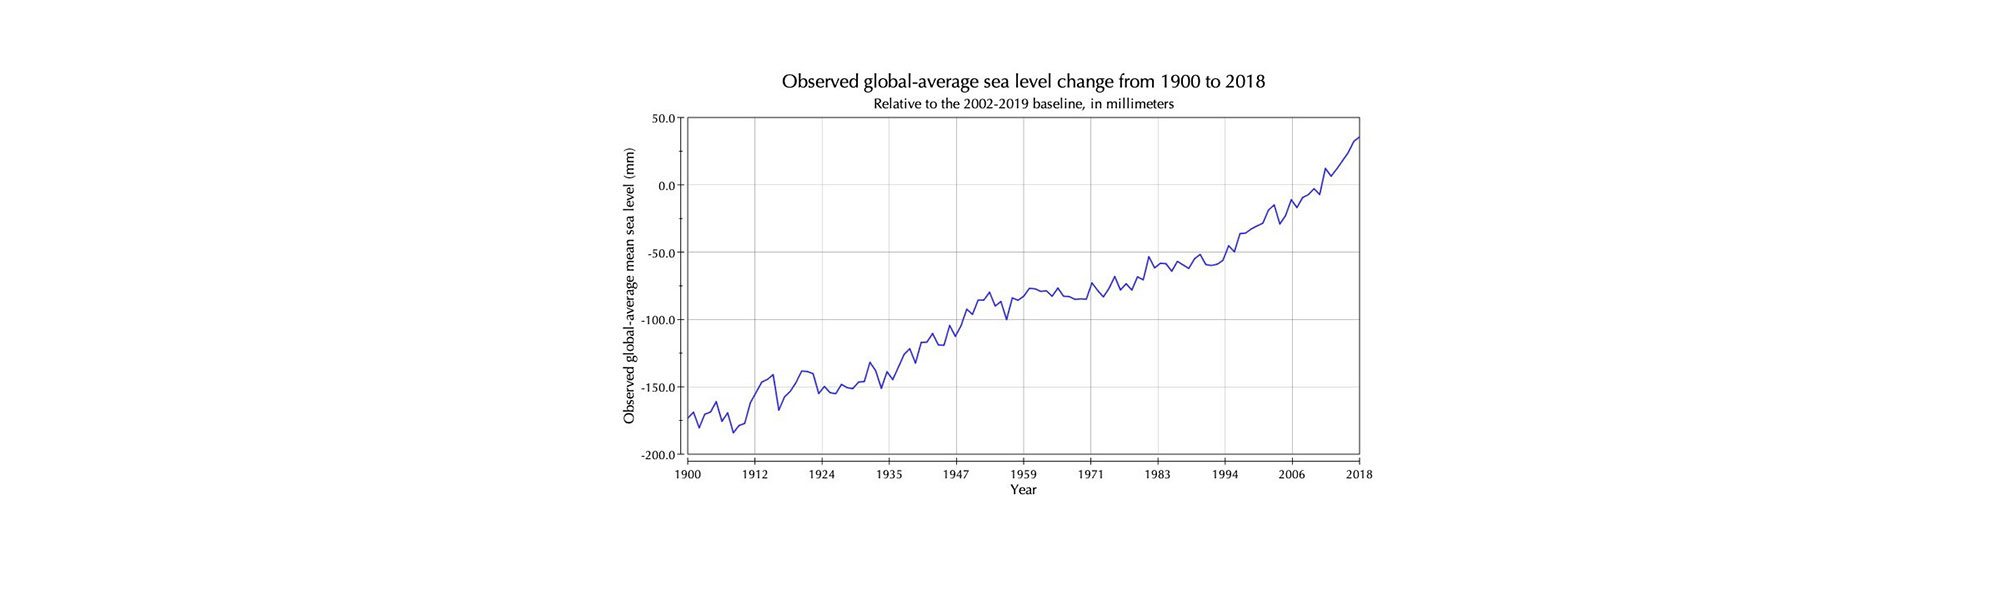 This graphic illustrates observed global-average sea level change from 1900 to 2018